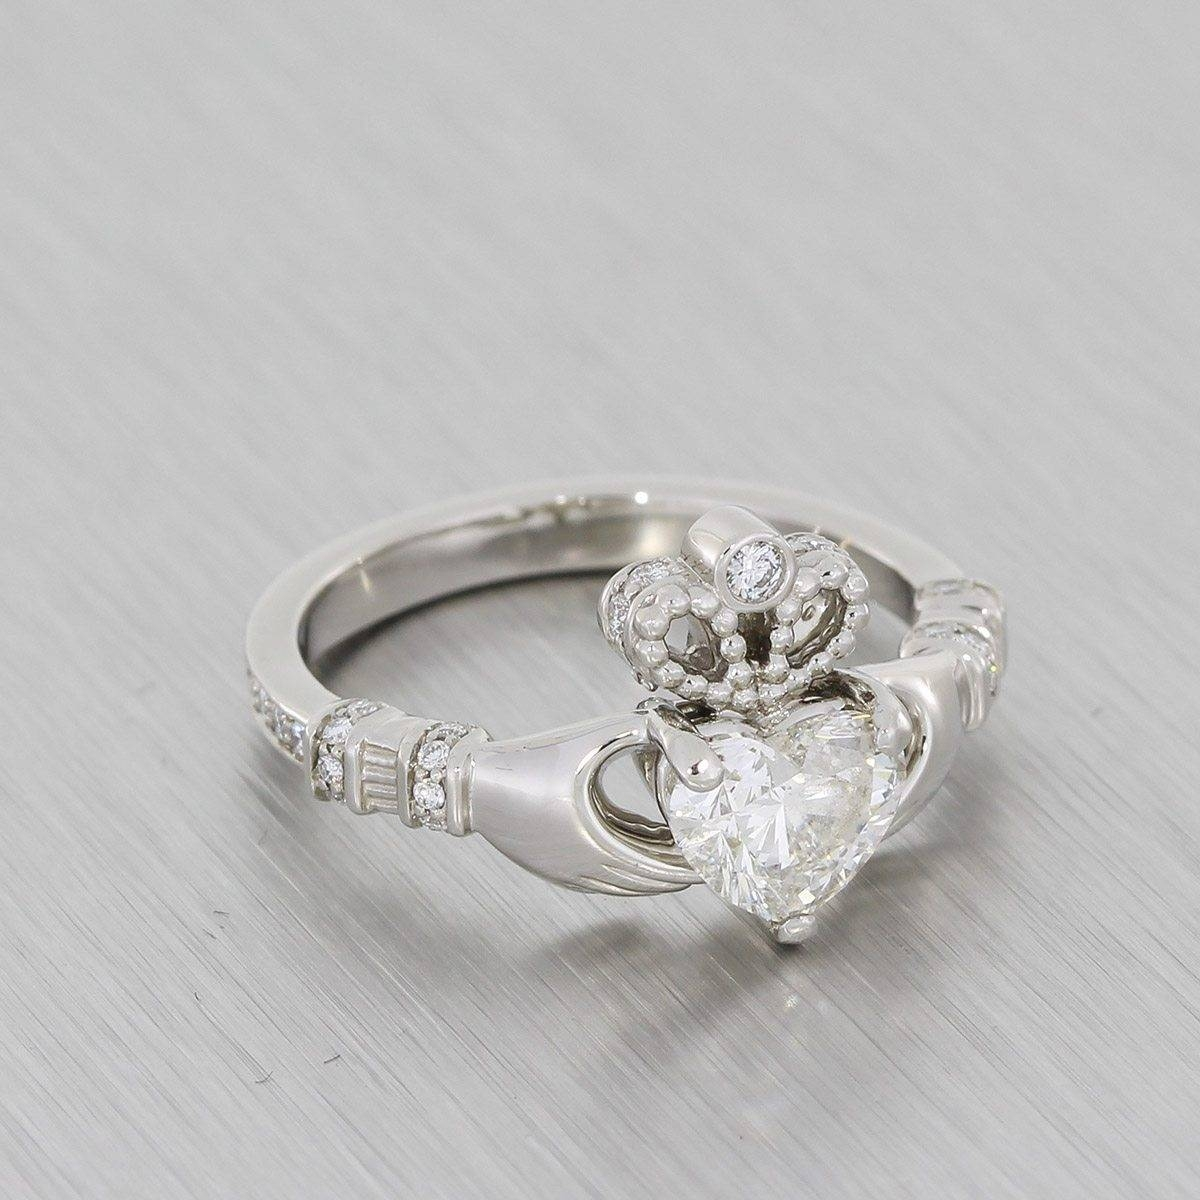 Custom Cut Heart Diamond Platinum Claddagh Ring – Portfolio Throughout Custom Claddagh Engagement Rings (View 10 of 15)